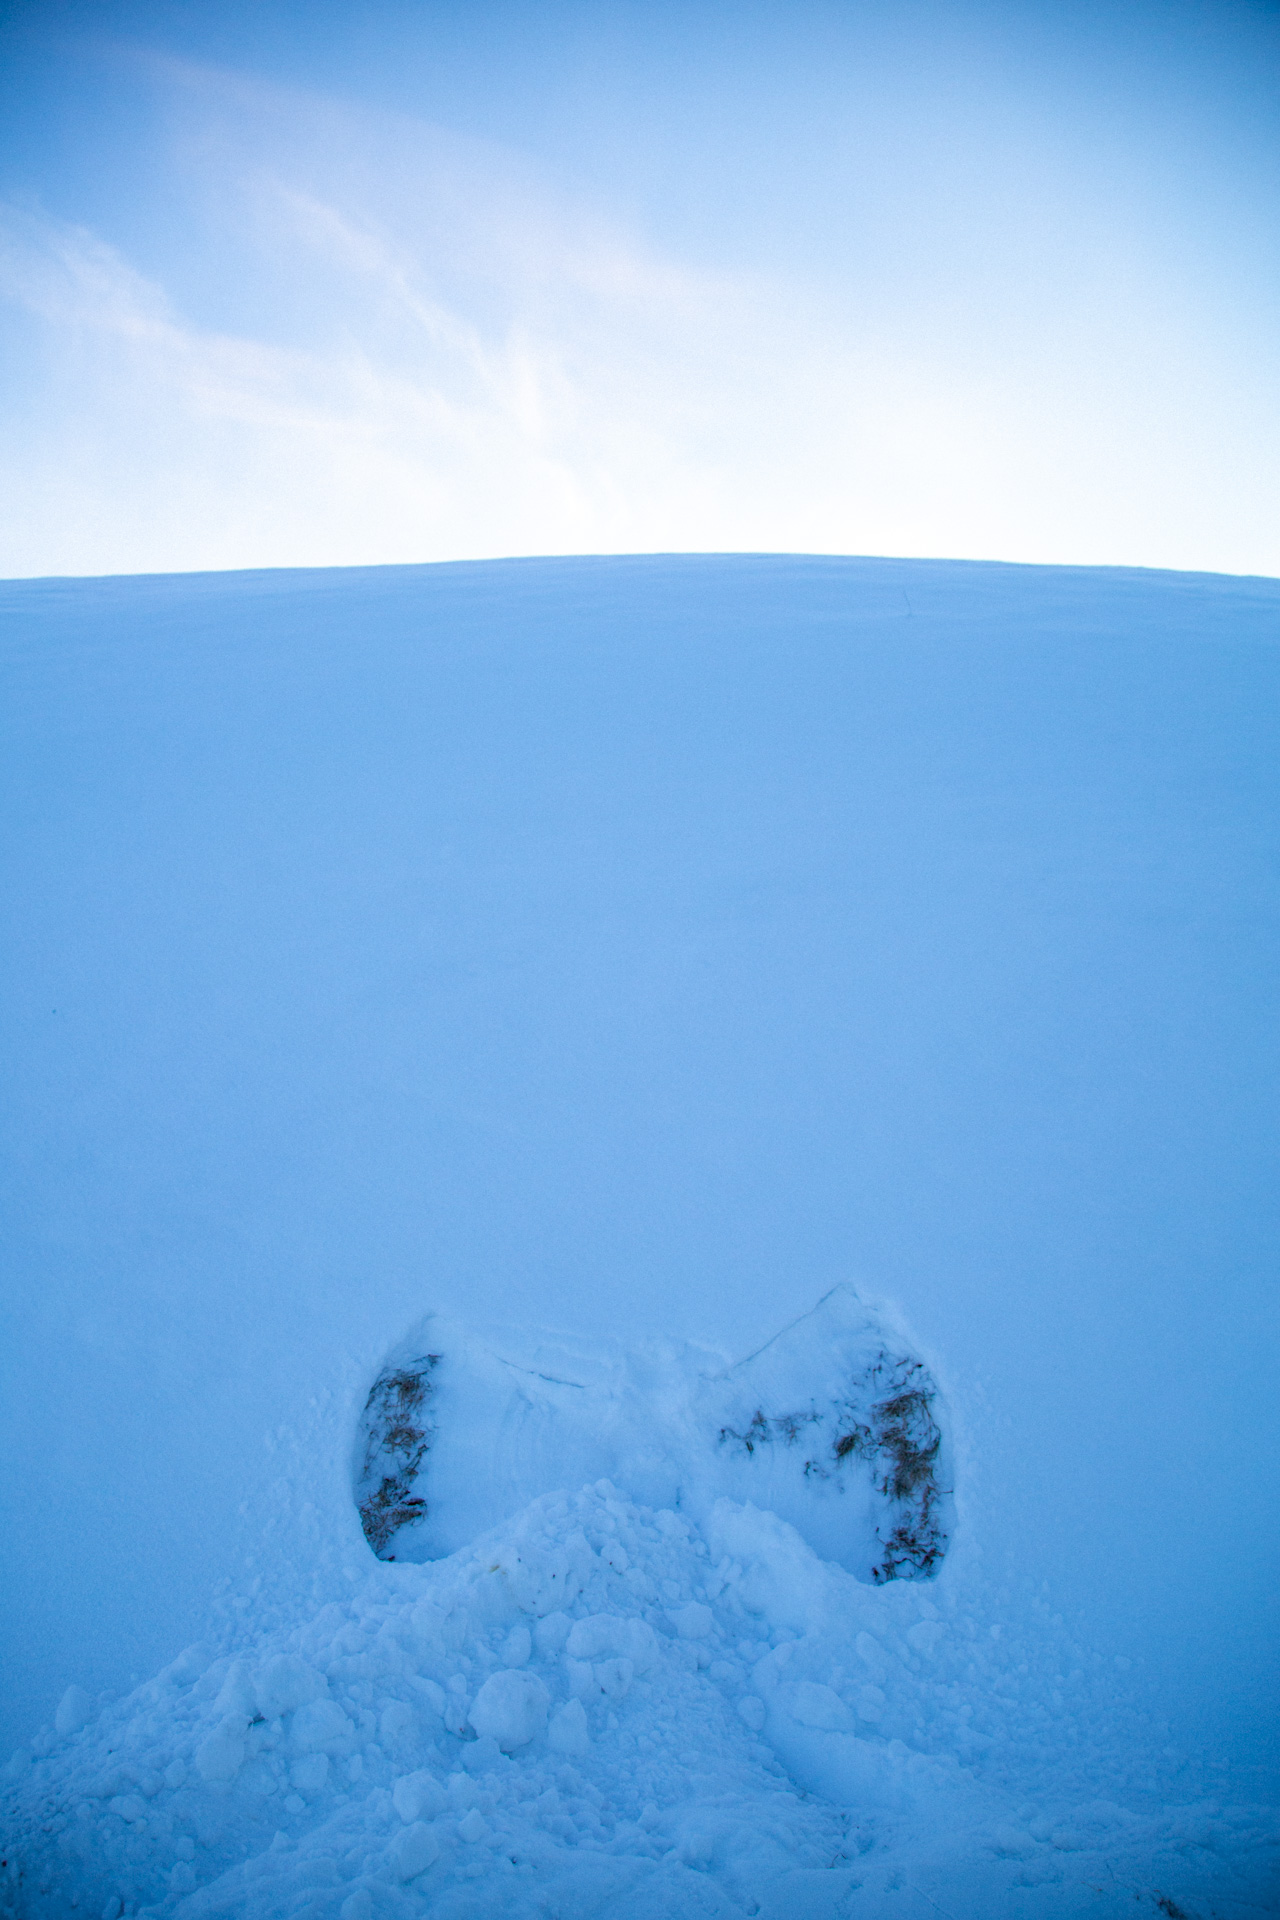 Snow angel by a hill with snow ploughed on it.